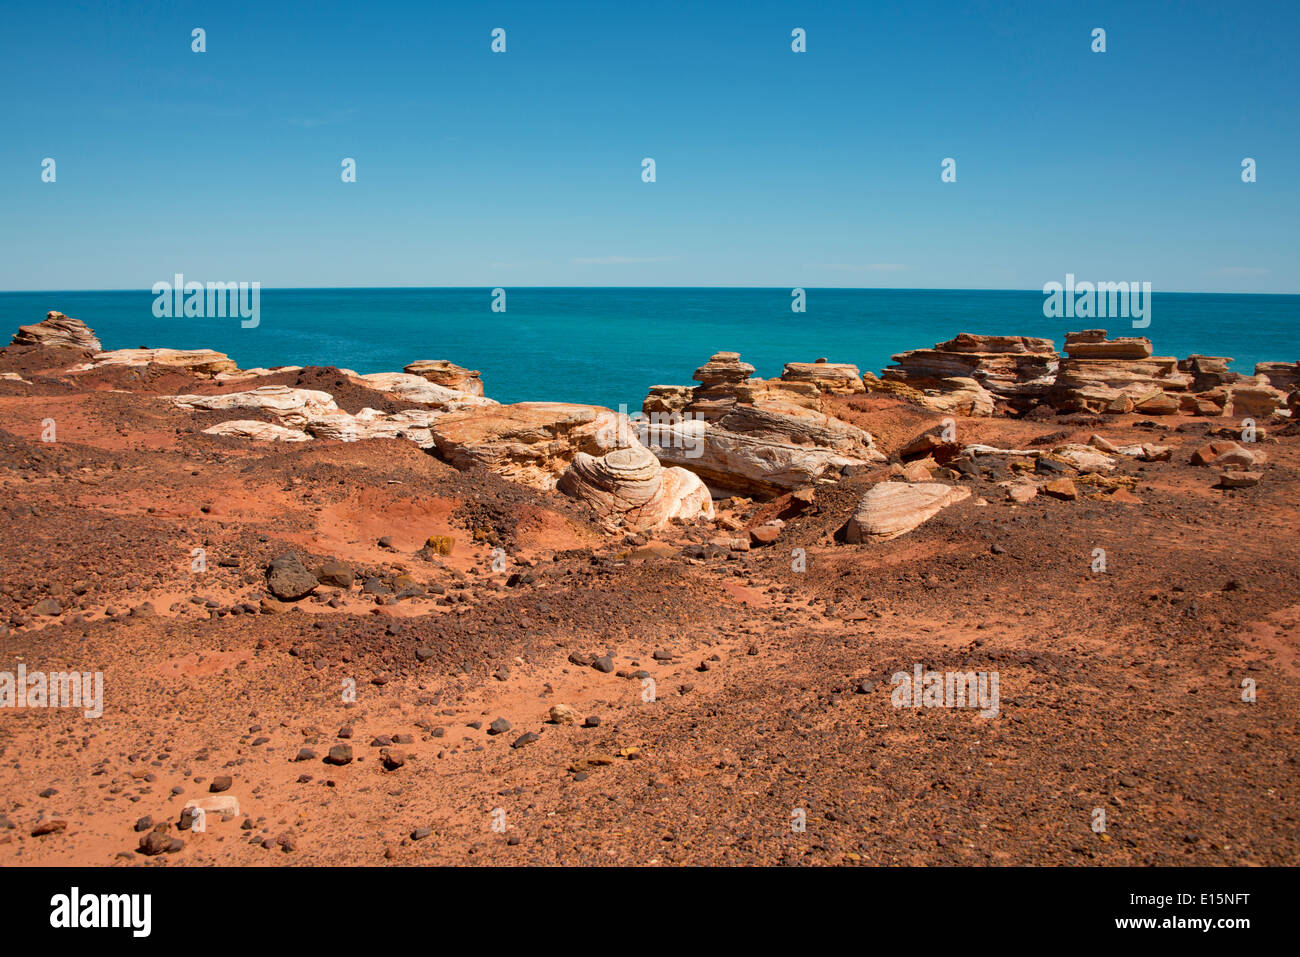 Australia, Western Australia, Broome. Gantheaume Point. Indian Ocean view of the rocky red cliffs. - Stock Image